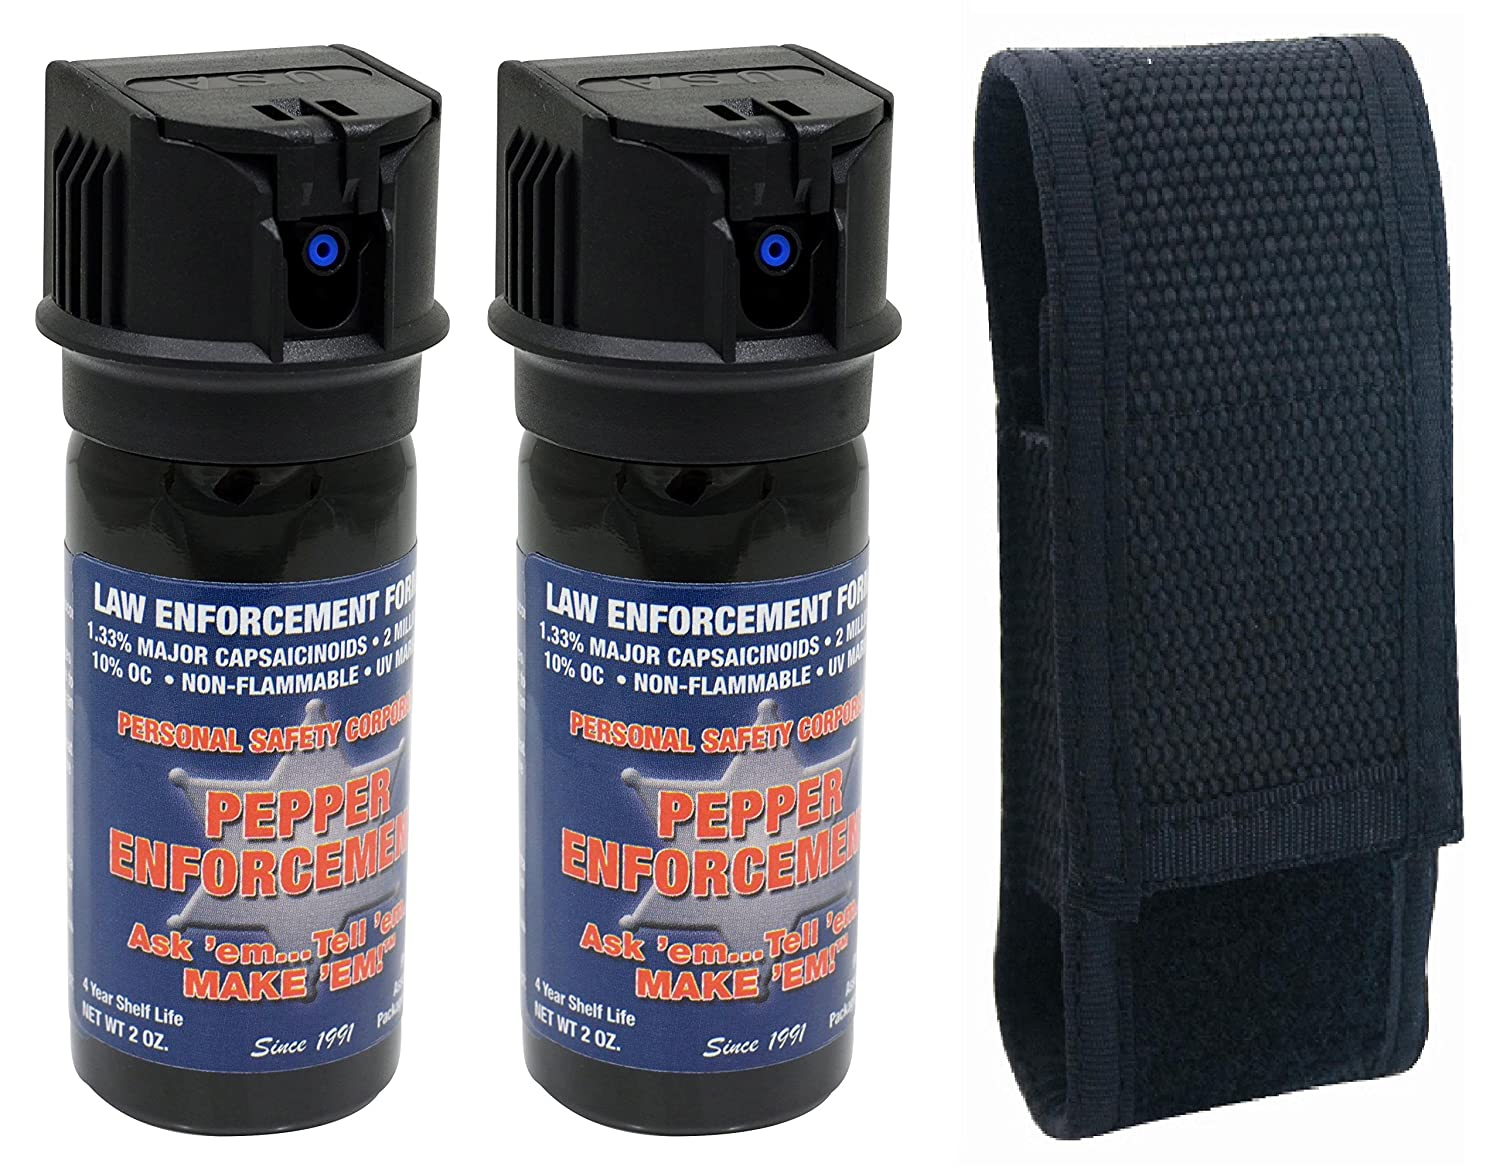 Pepper Enforcement Splatter Stream Police Grade 10 OC Pepper Spray – Max Strength Law Enforcement Formula – Flip Top Canister – 4 Year Shelf Life 2-Pack w Belt Loop Holster